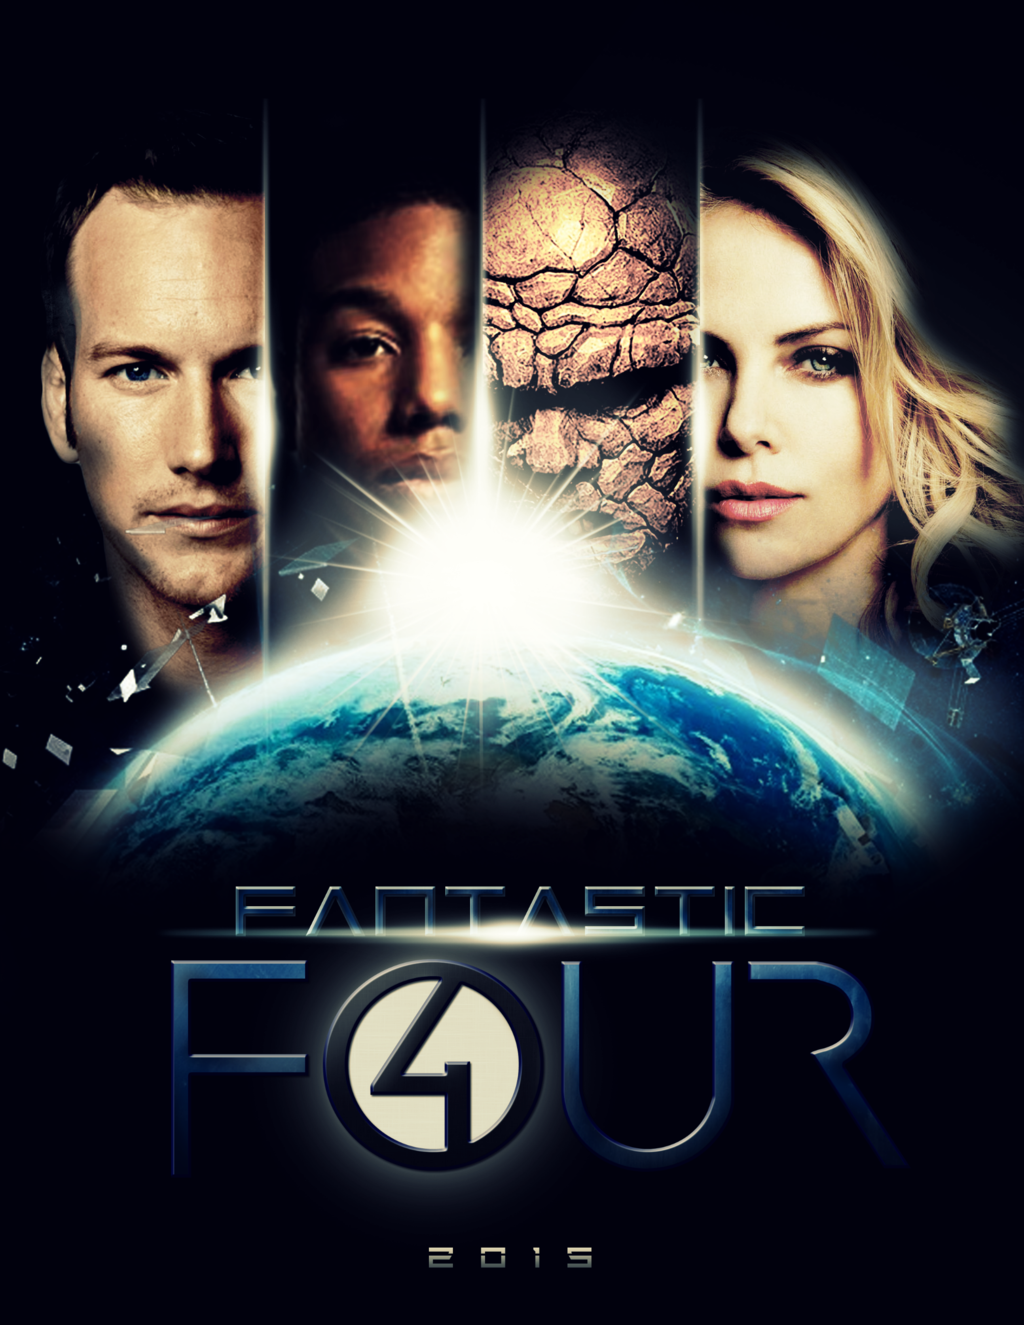 Download Full HD Movie Free: Fantastic Four (2015) - Four HD PNG